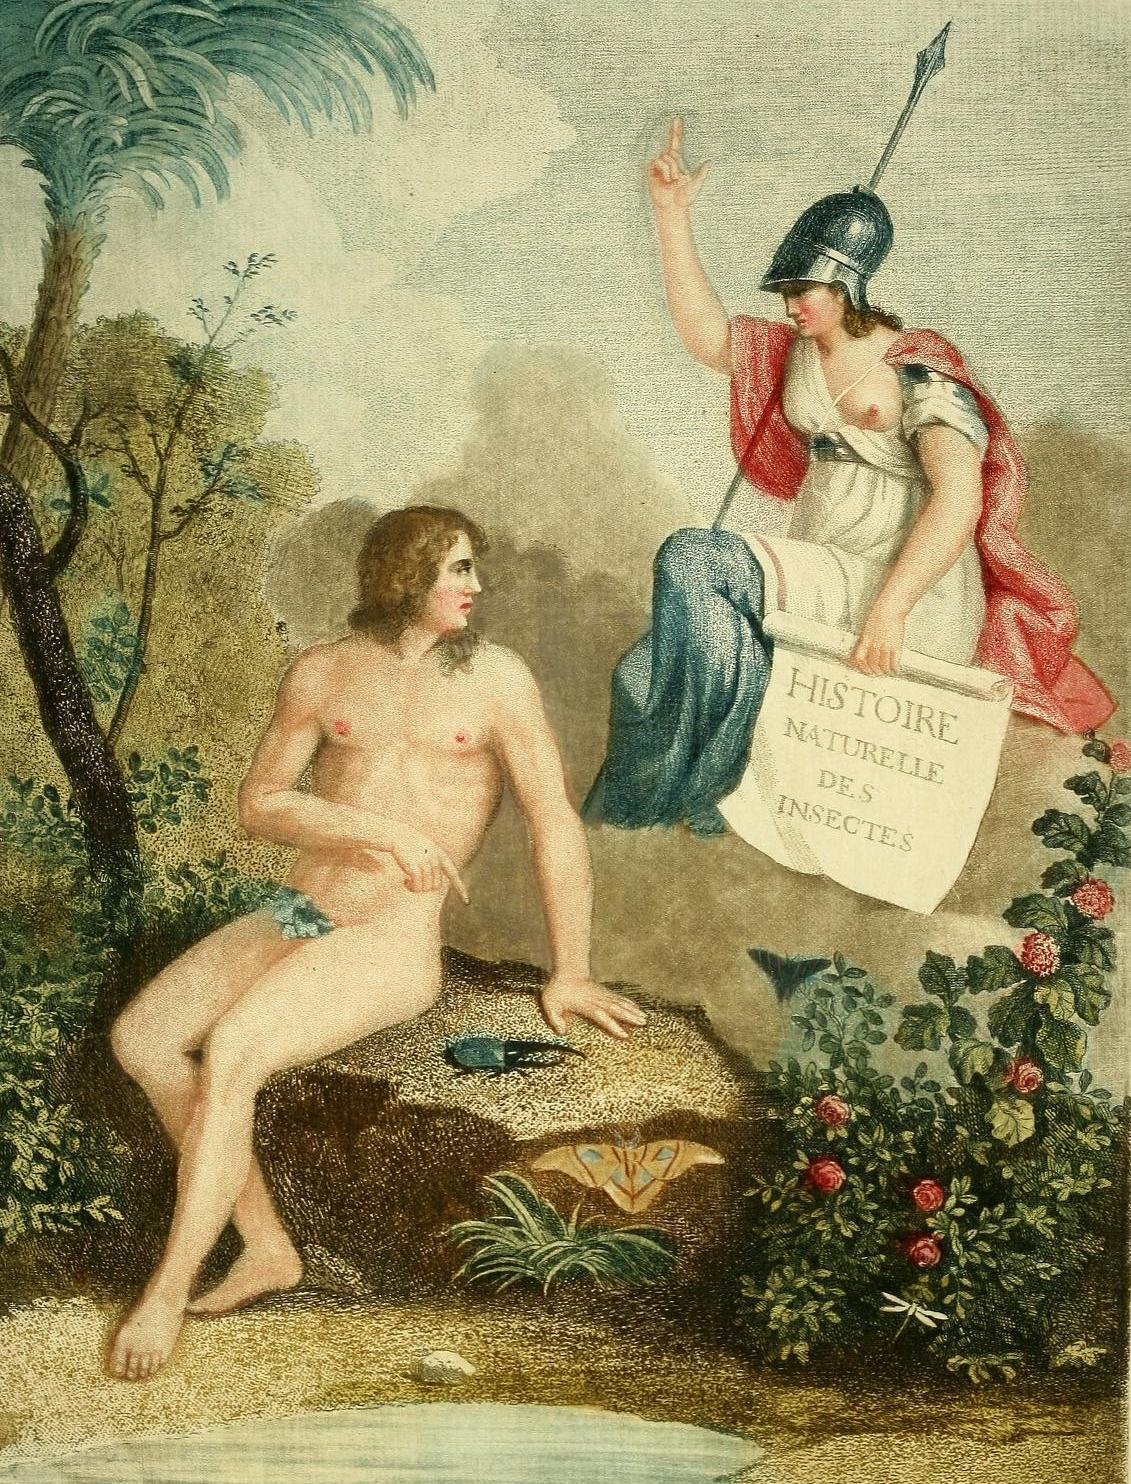 biomedicalephemera:  The Naming of Beasts: Adam, in the Garden of Eden An angel holds a scroll with the title of the book and points toward Heaven, as Adam points toward a Hercules beetle (Dynastes hercules). An Atlas moth (Attacus atlas) rests on the side of the rock Adam sits upon, and a Pipevine swallowtail butterfly (Battus philenor) and white dragonfly (subfamily Anisoptera) are depicted aside the scene. Entomologie, ou, Histoire Naturelle des Insects: Coleoptera. Antoine Guilame Olivier, 1808. [Fourth edition, original publication date 1798.]